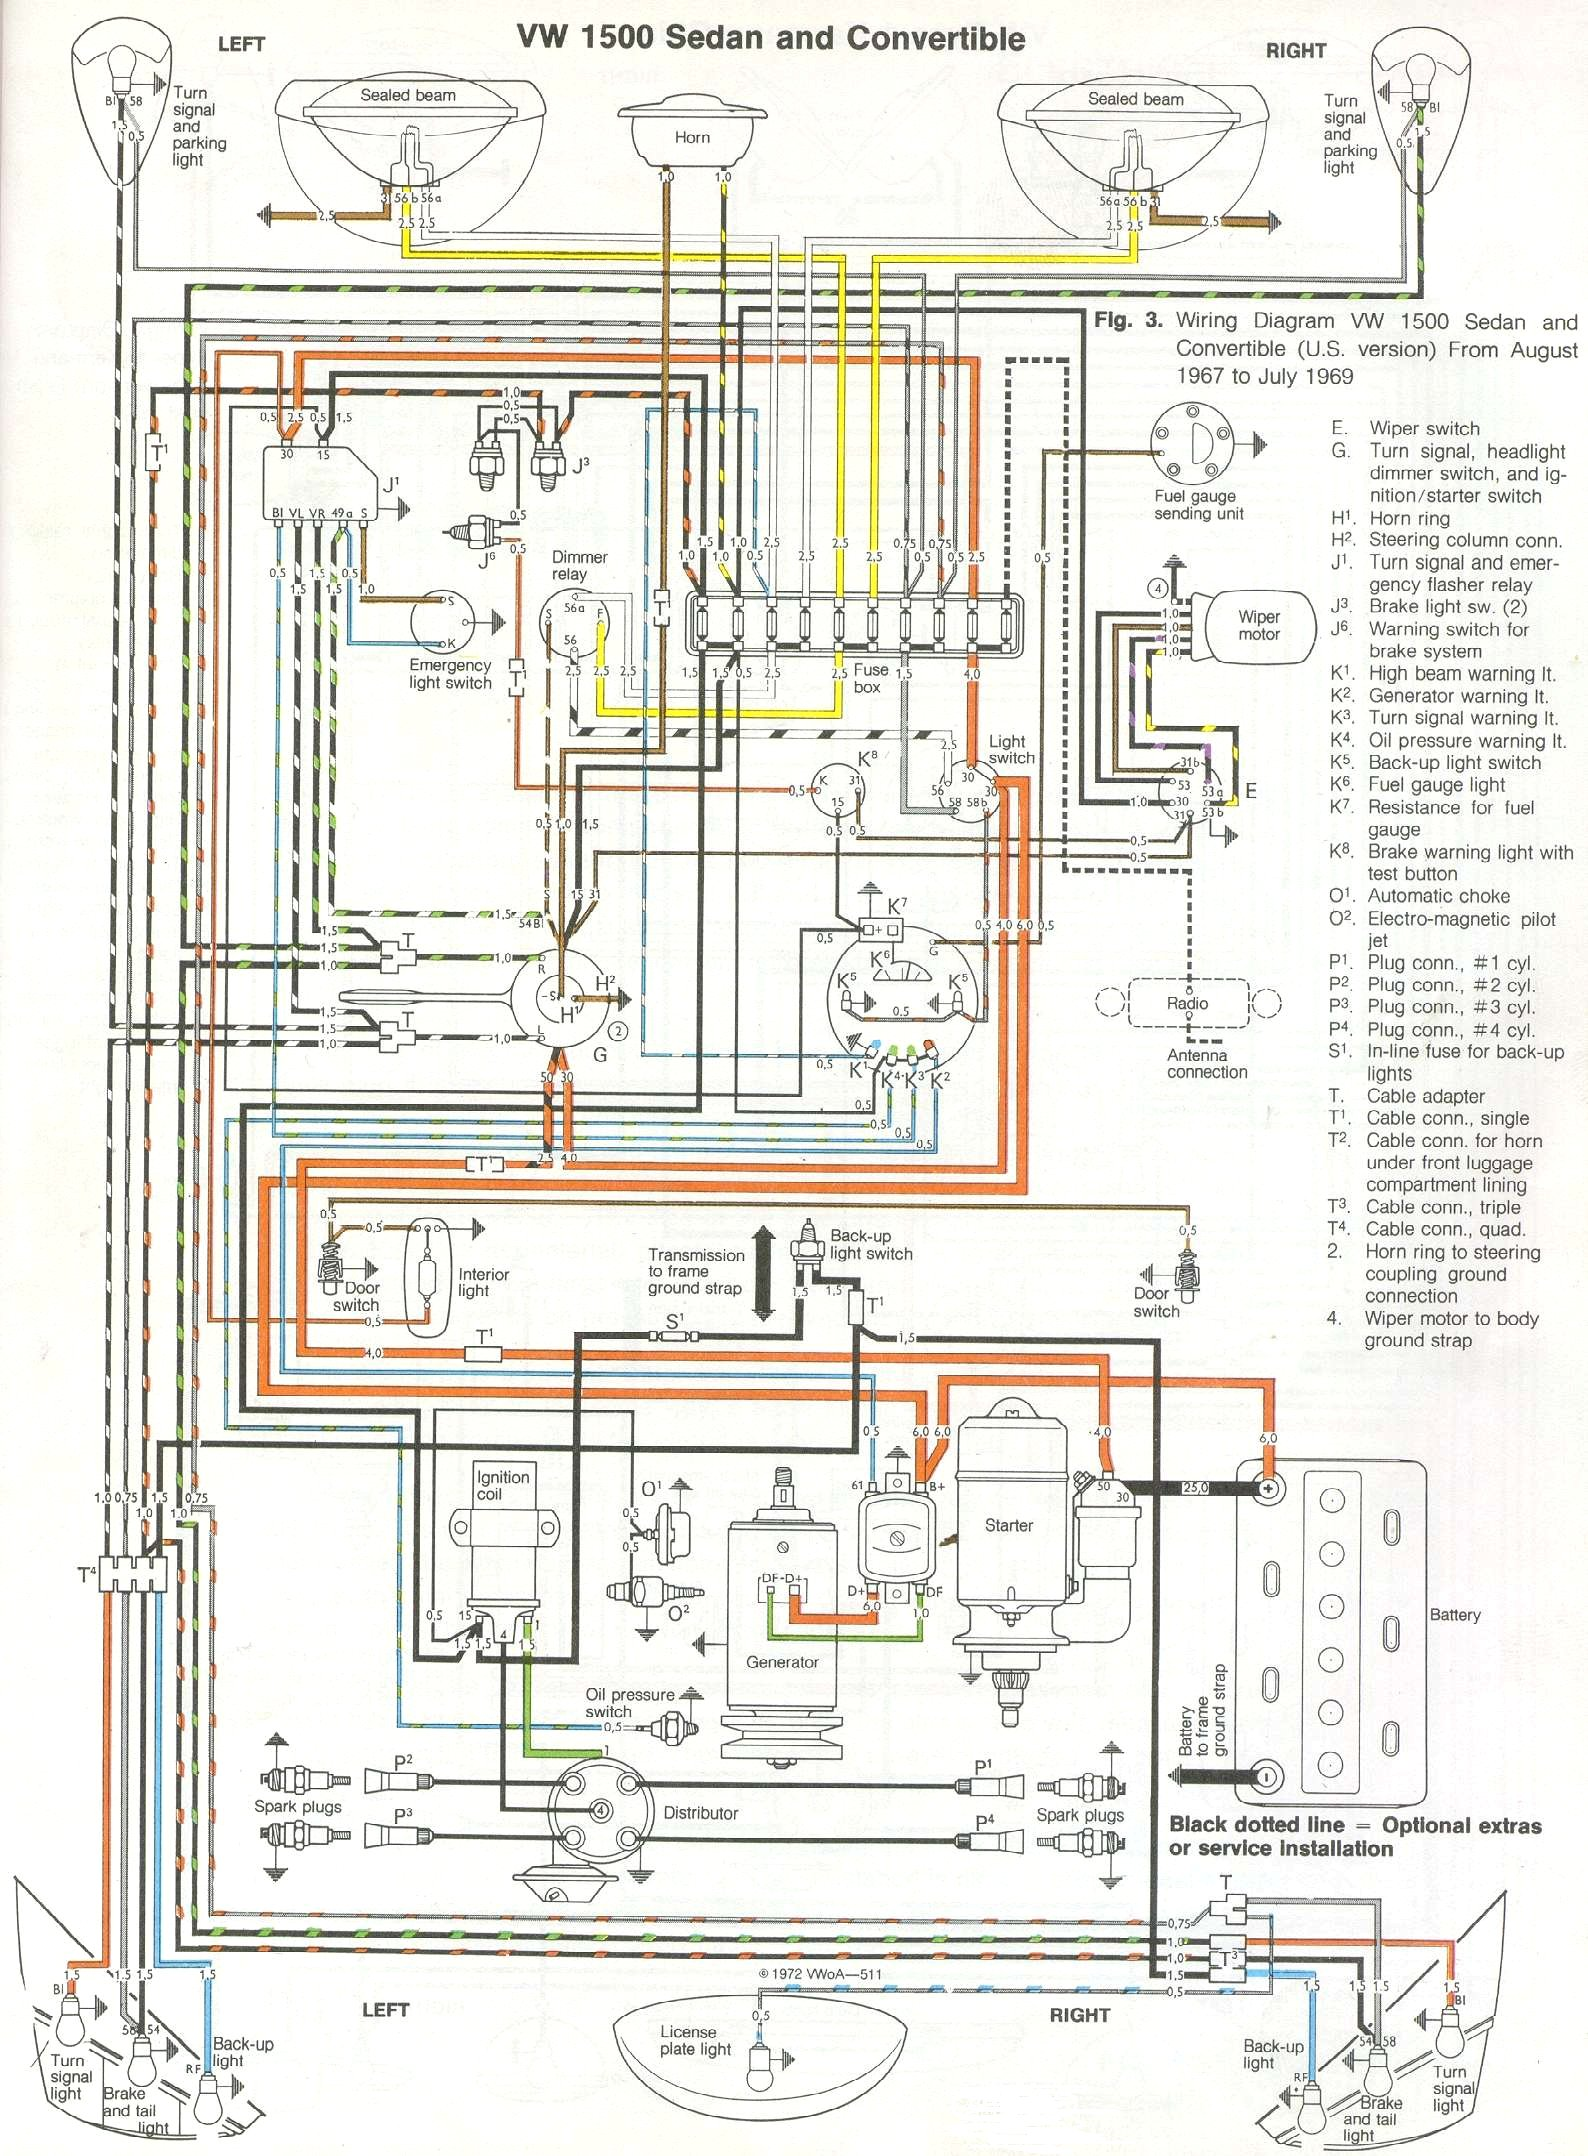 1969 71 beetle wiring diagram thegoldenbug com rh thegoldenbug com 1970 vw beetle wiring diagram google 1970 vw beetle headlight switch wiring diagram